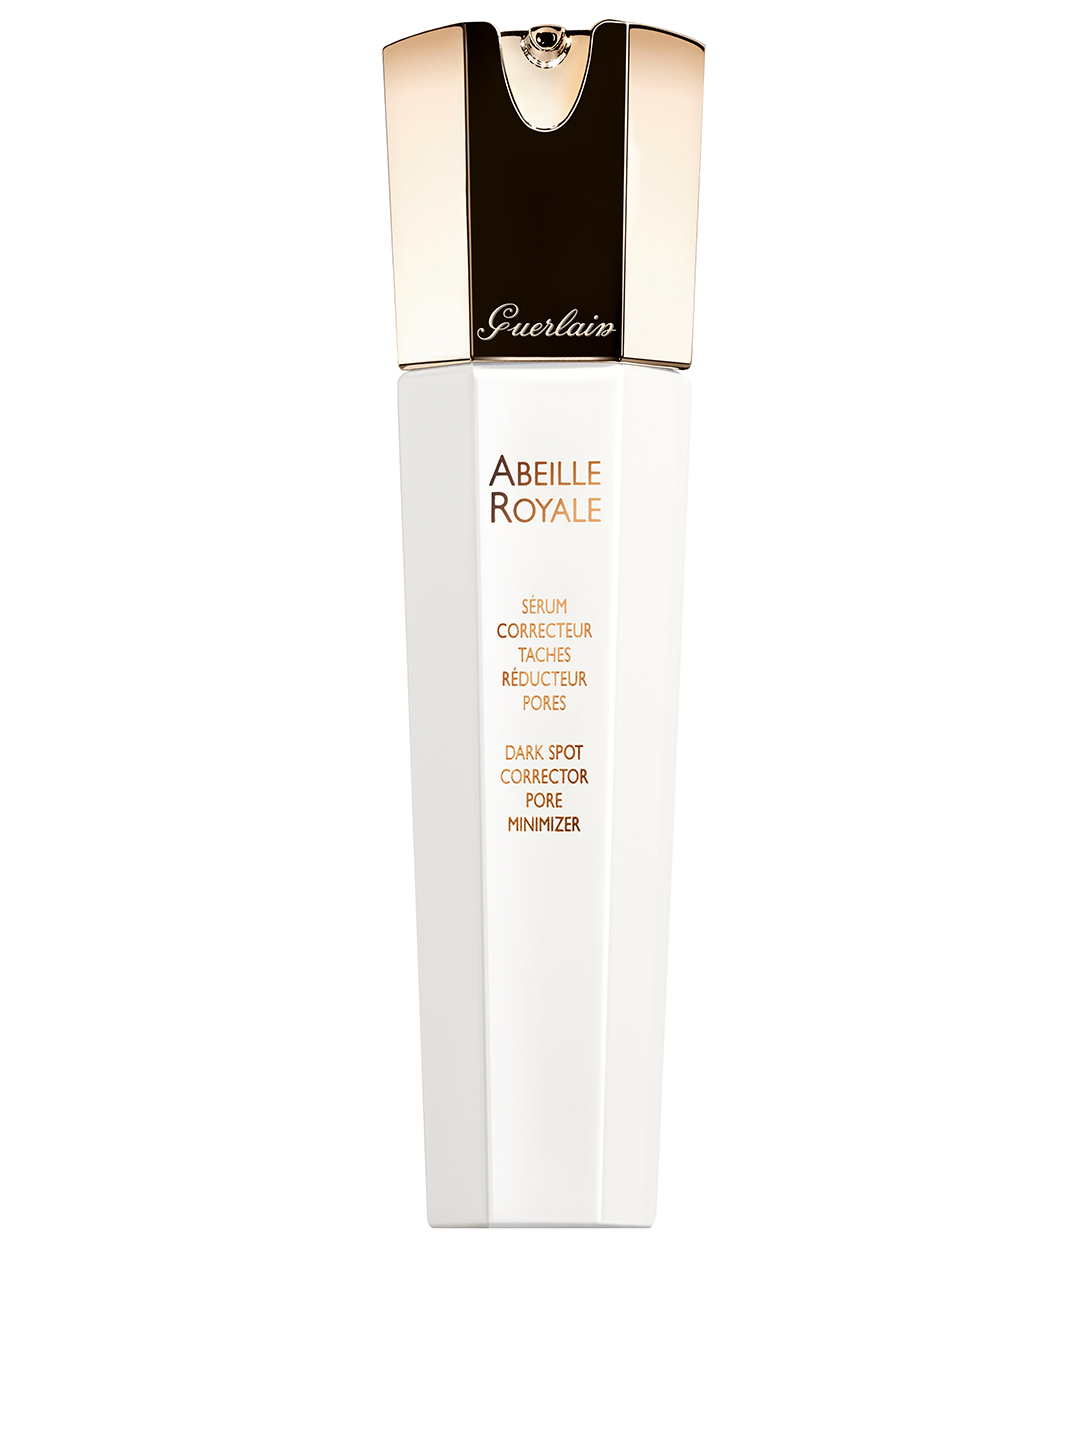 GUERLAIN Abeille Royale Dark Spot Serum Beauty